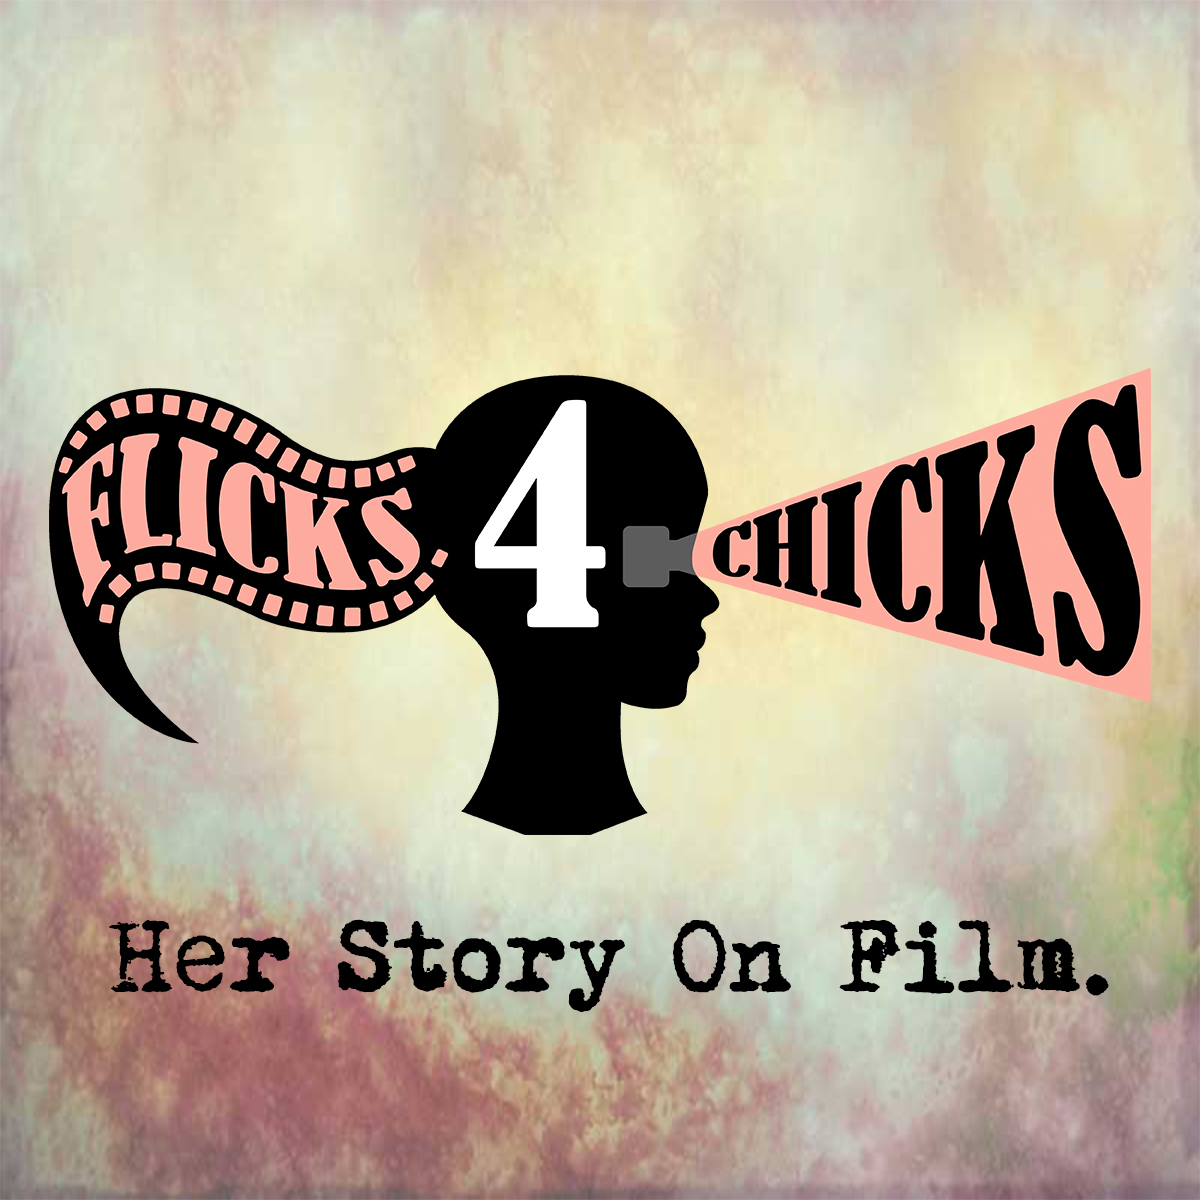 Introducing Flicks4Chicks: Our Brand New Film Contest Has Launched!